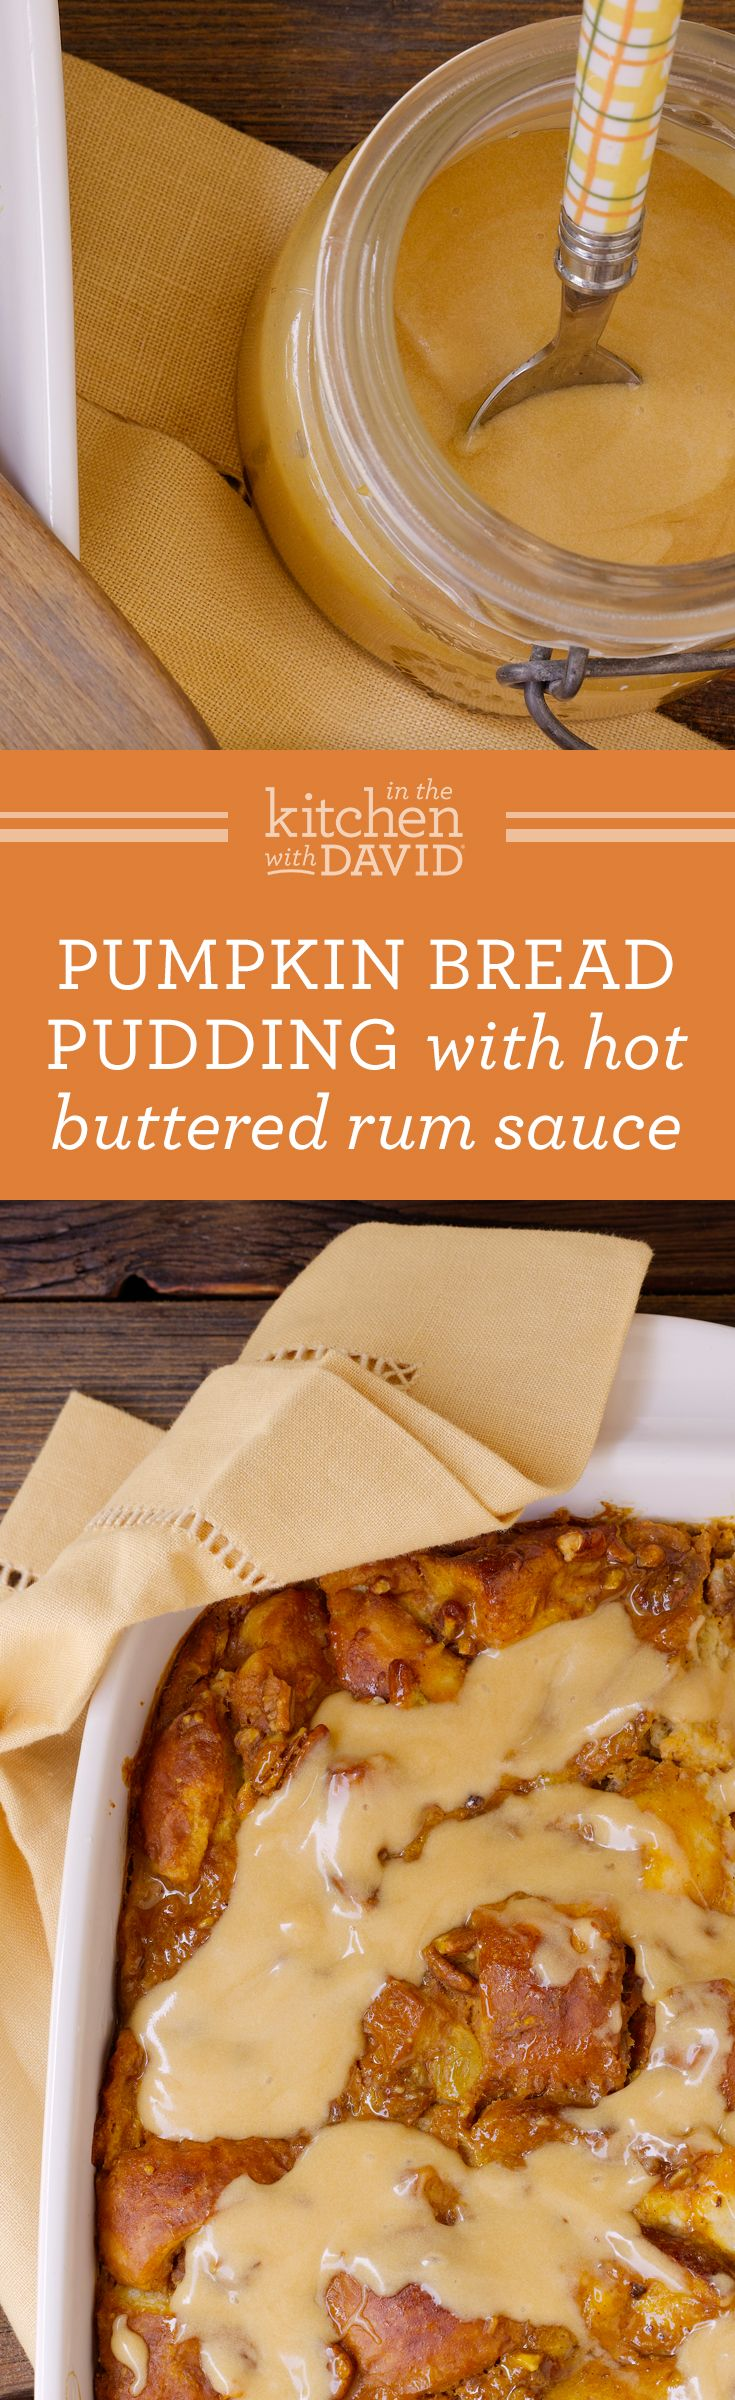 Pumpkin Bread Pudding with Hot Buttered Rum Sauce                                                                                                                                                                                 More